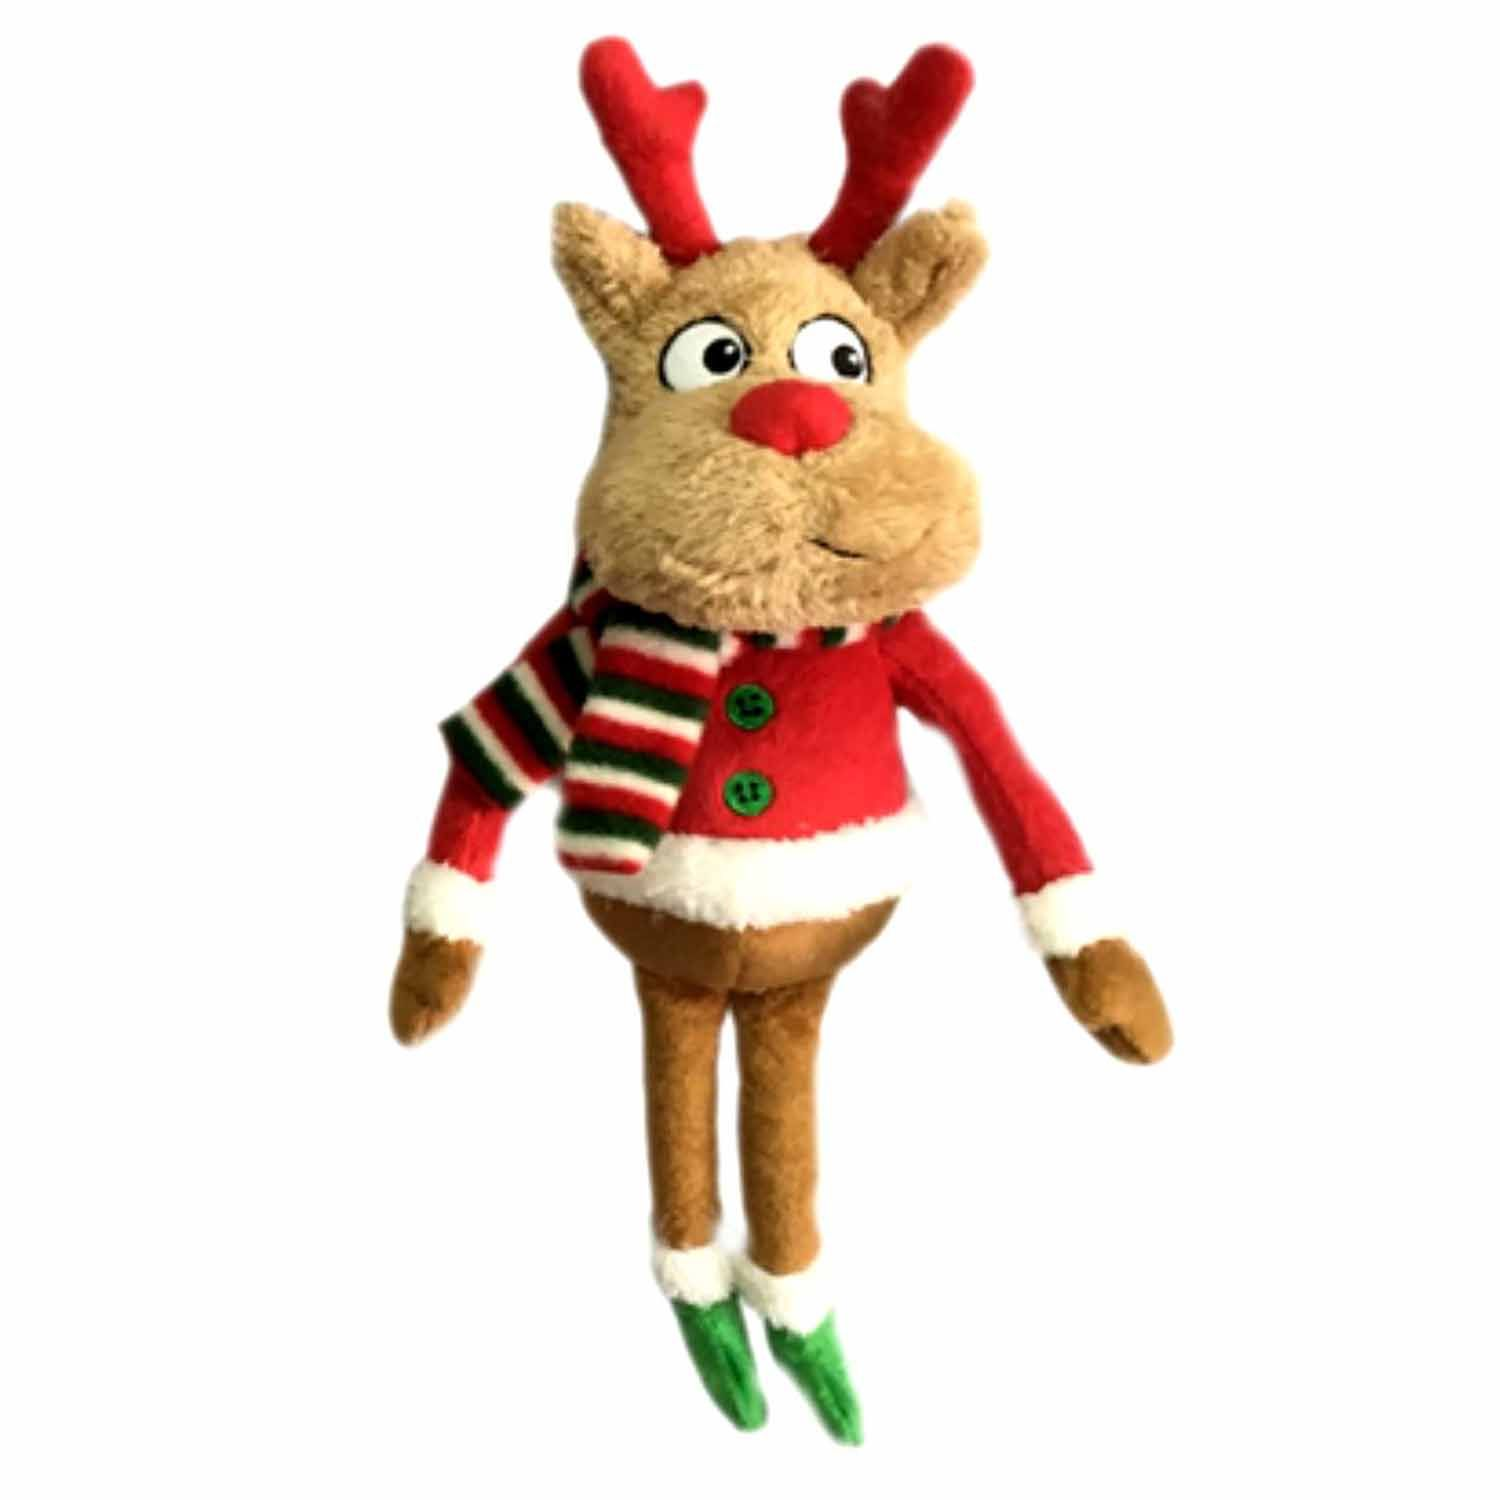 Dog Toys For Boys : Dog toy mcjingles deer three boys of scottsdale pet